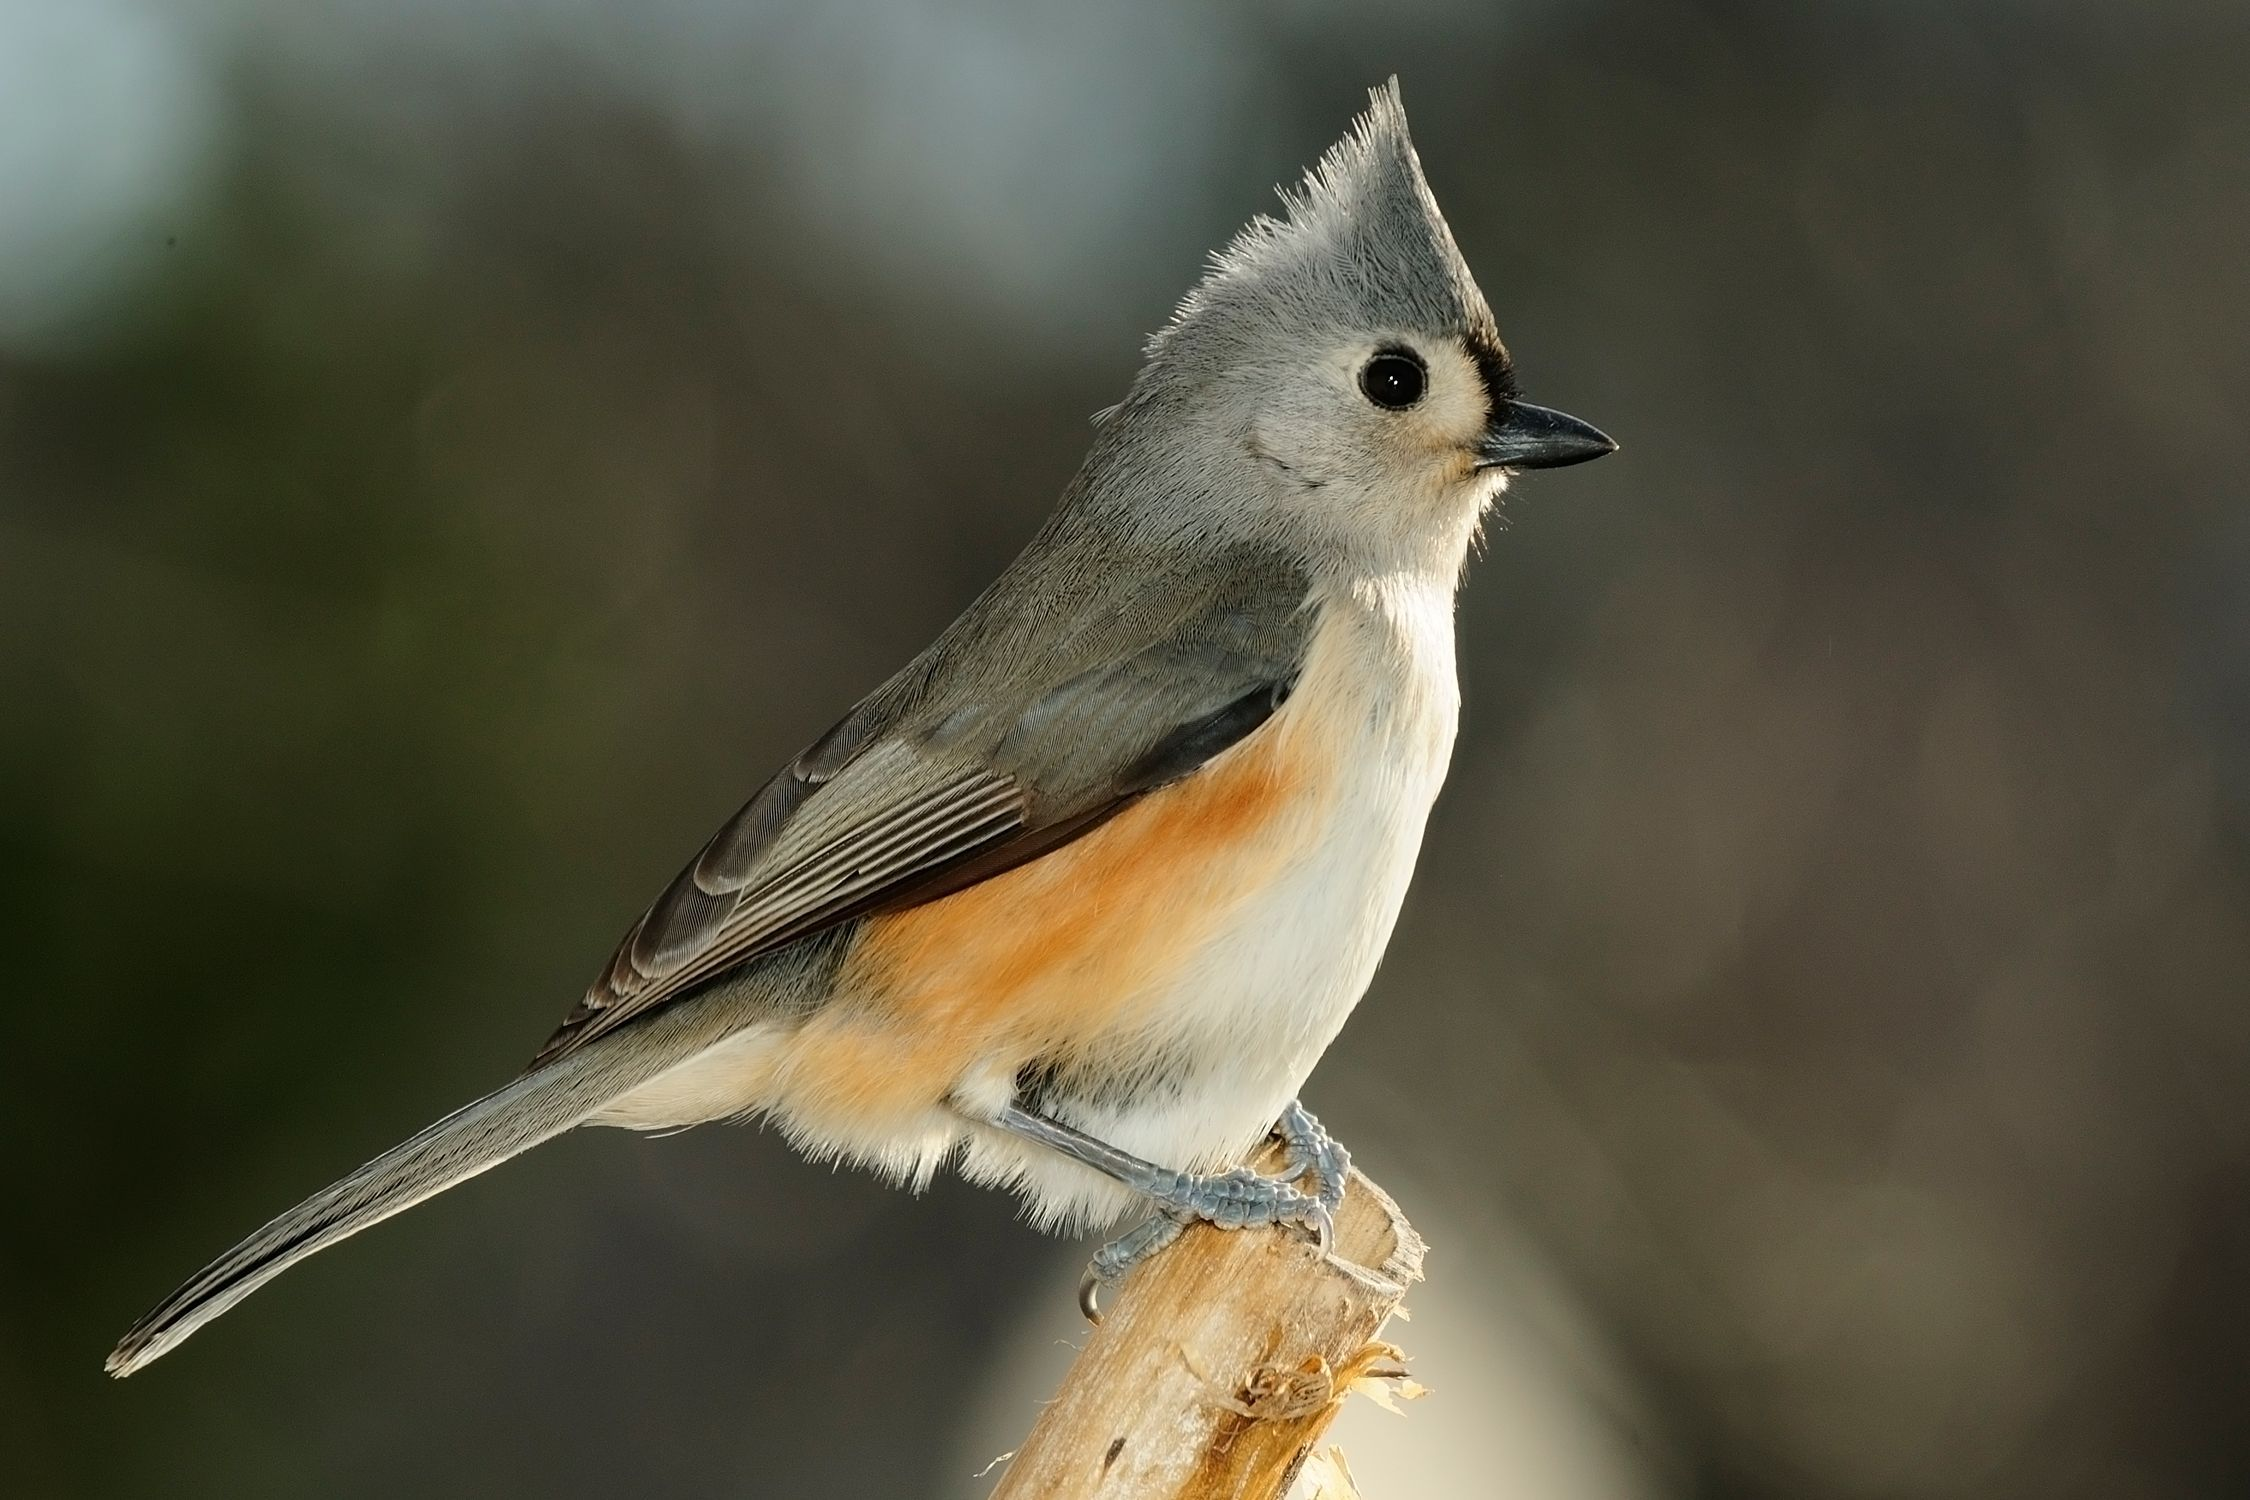 BJ Knapp author of Beside the Music watches tufted titmouse